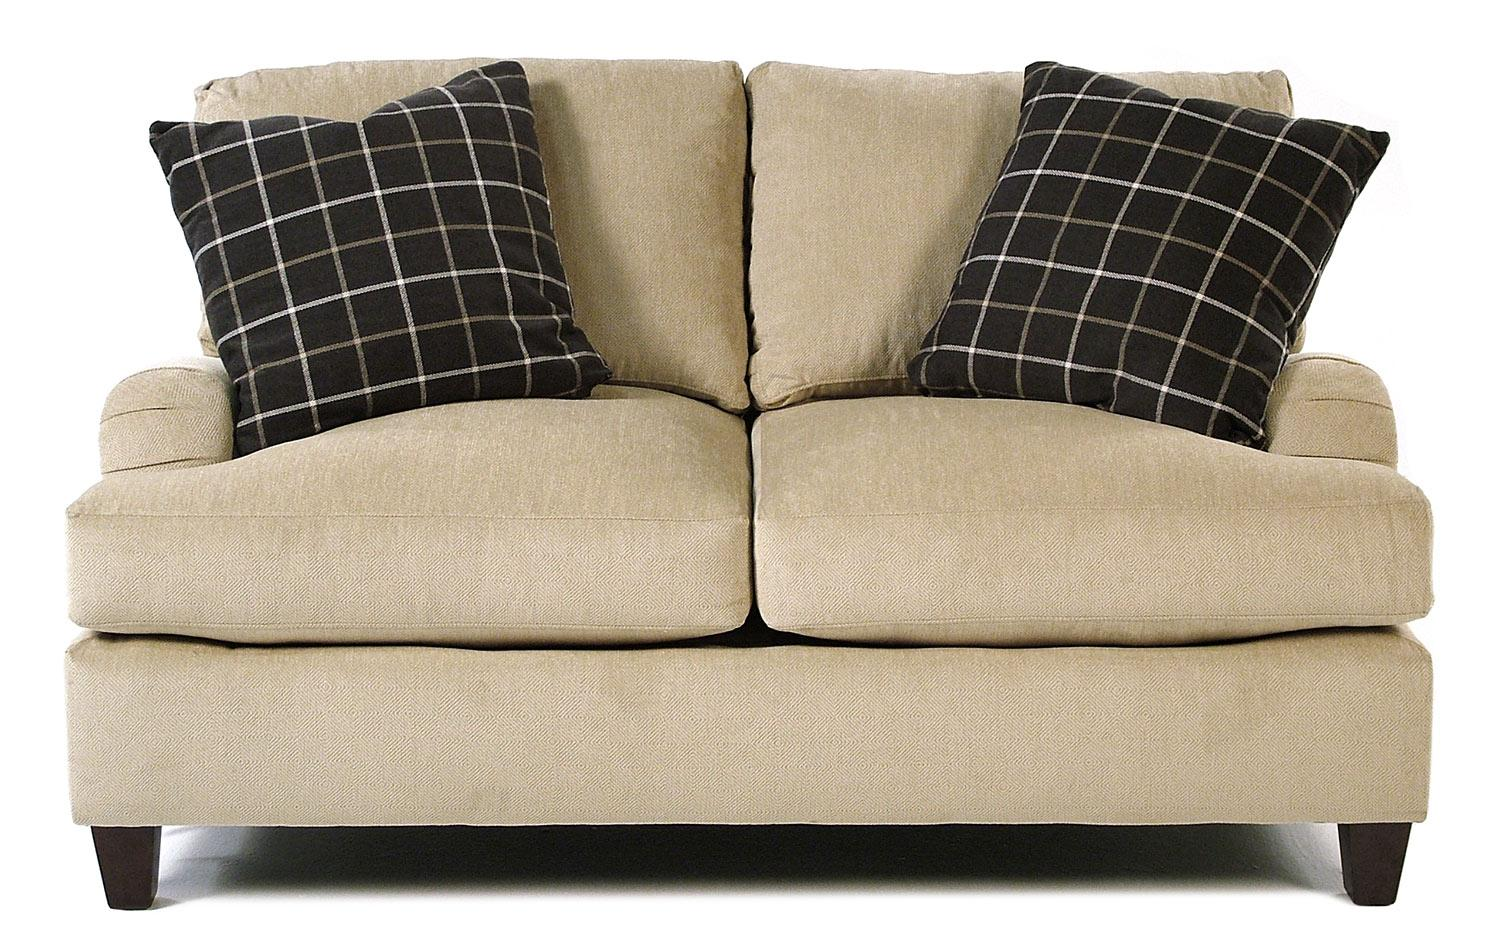 Simple Elegance Londoner Love Seat - Item Number: K13400 LS